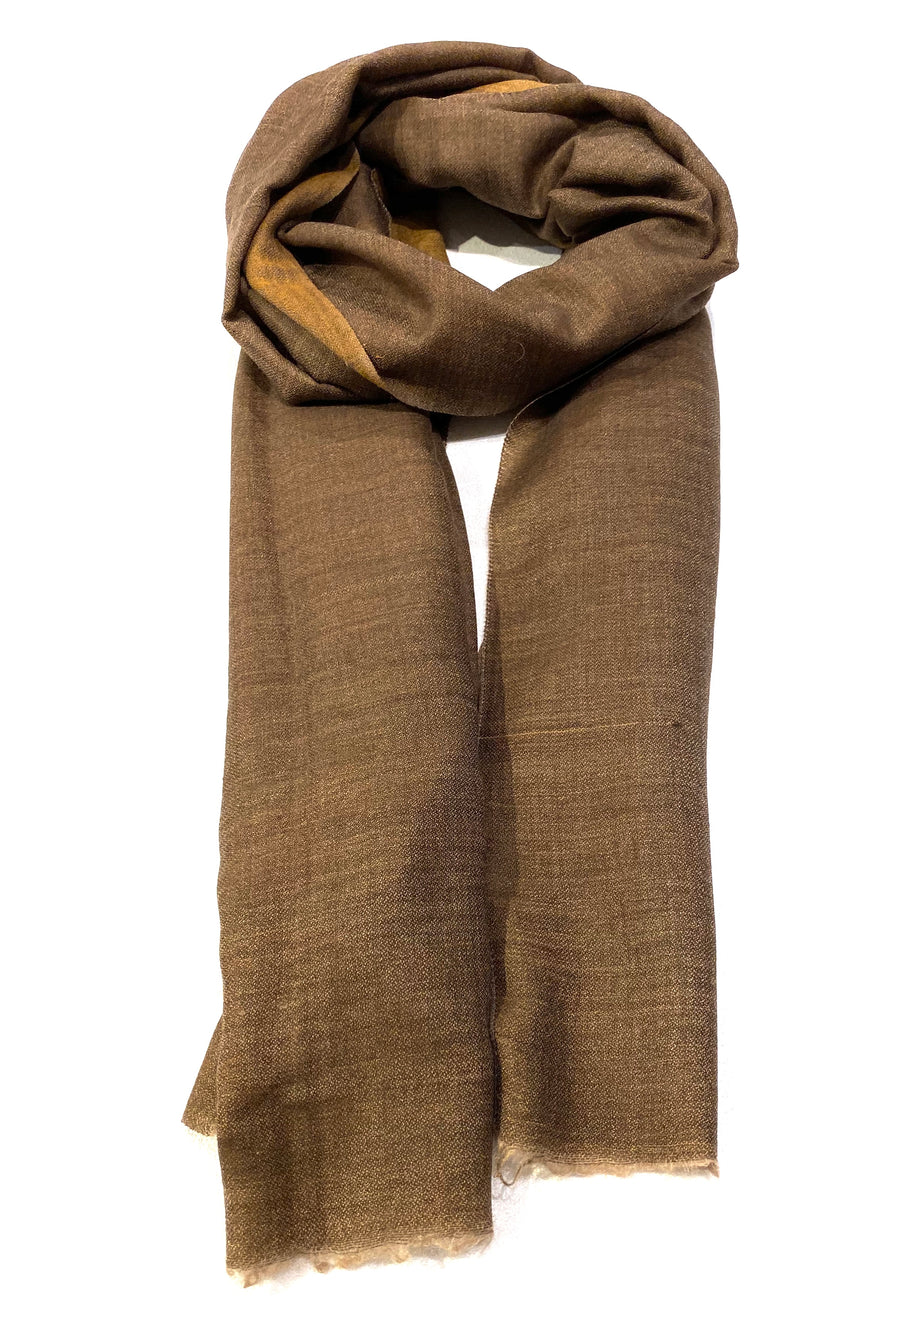 DOUBLE SIDED CASHMERE SCARF